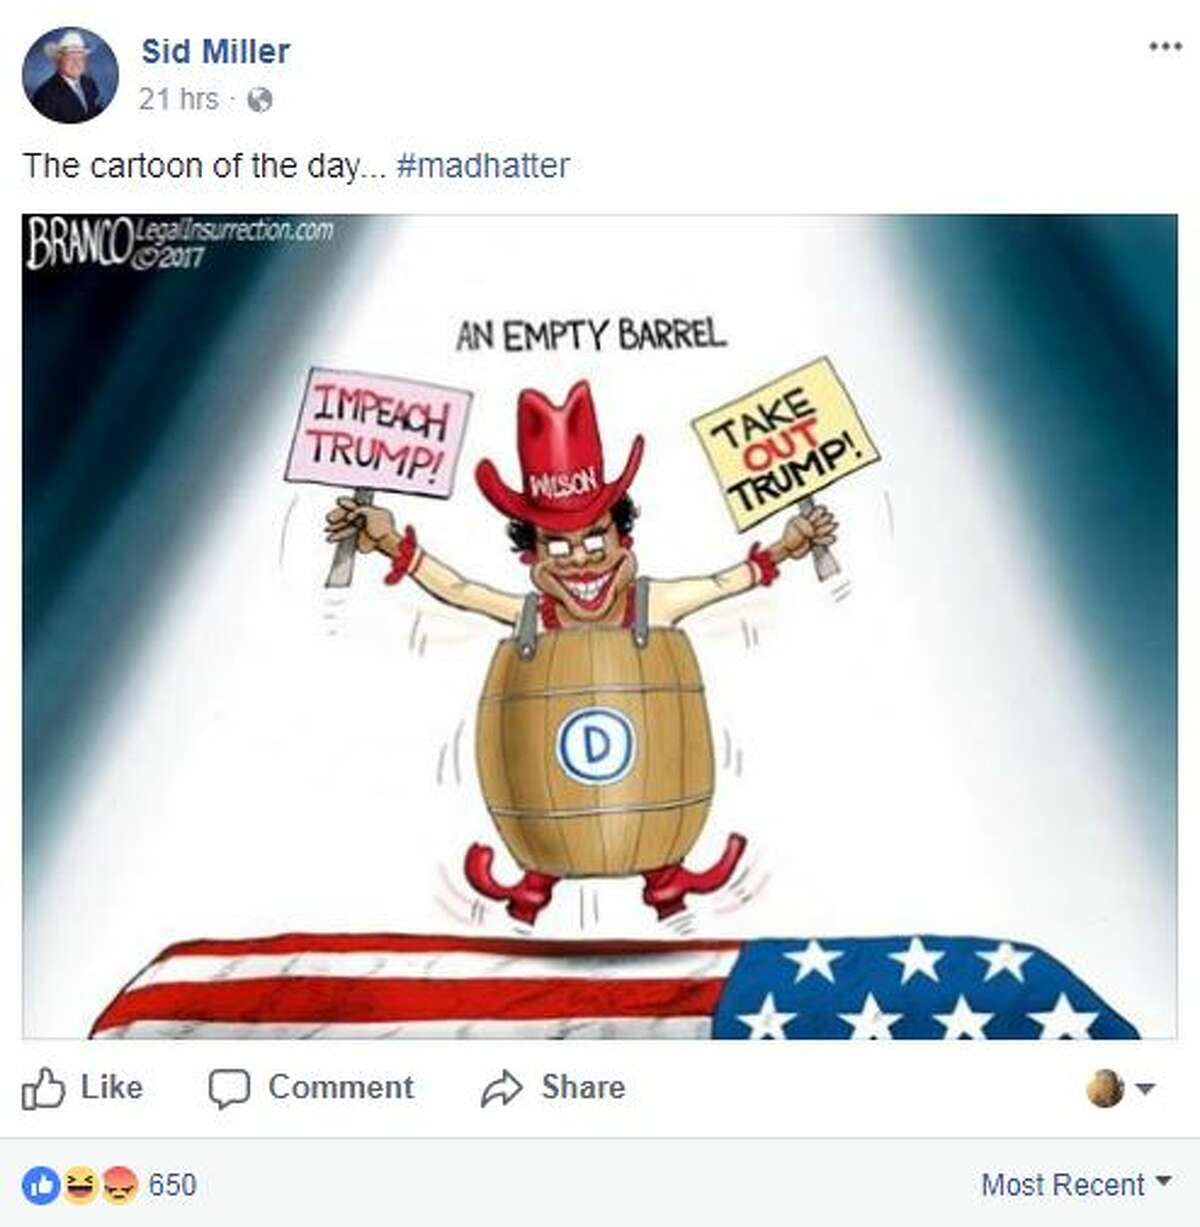 Texas Agriculture Commissioner Sid Miller posted a cartoon on his Facebook page Oct. 23, 2017, depicting Florida Congresswoman Frederica Wilson wearing a barrel and dancing on the grave of a soldier.